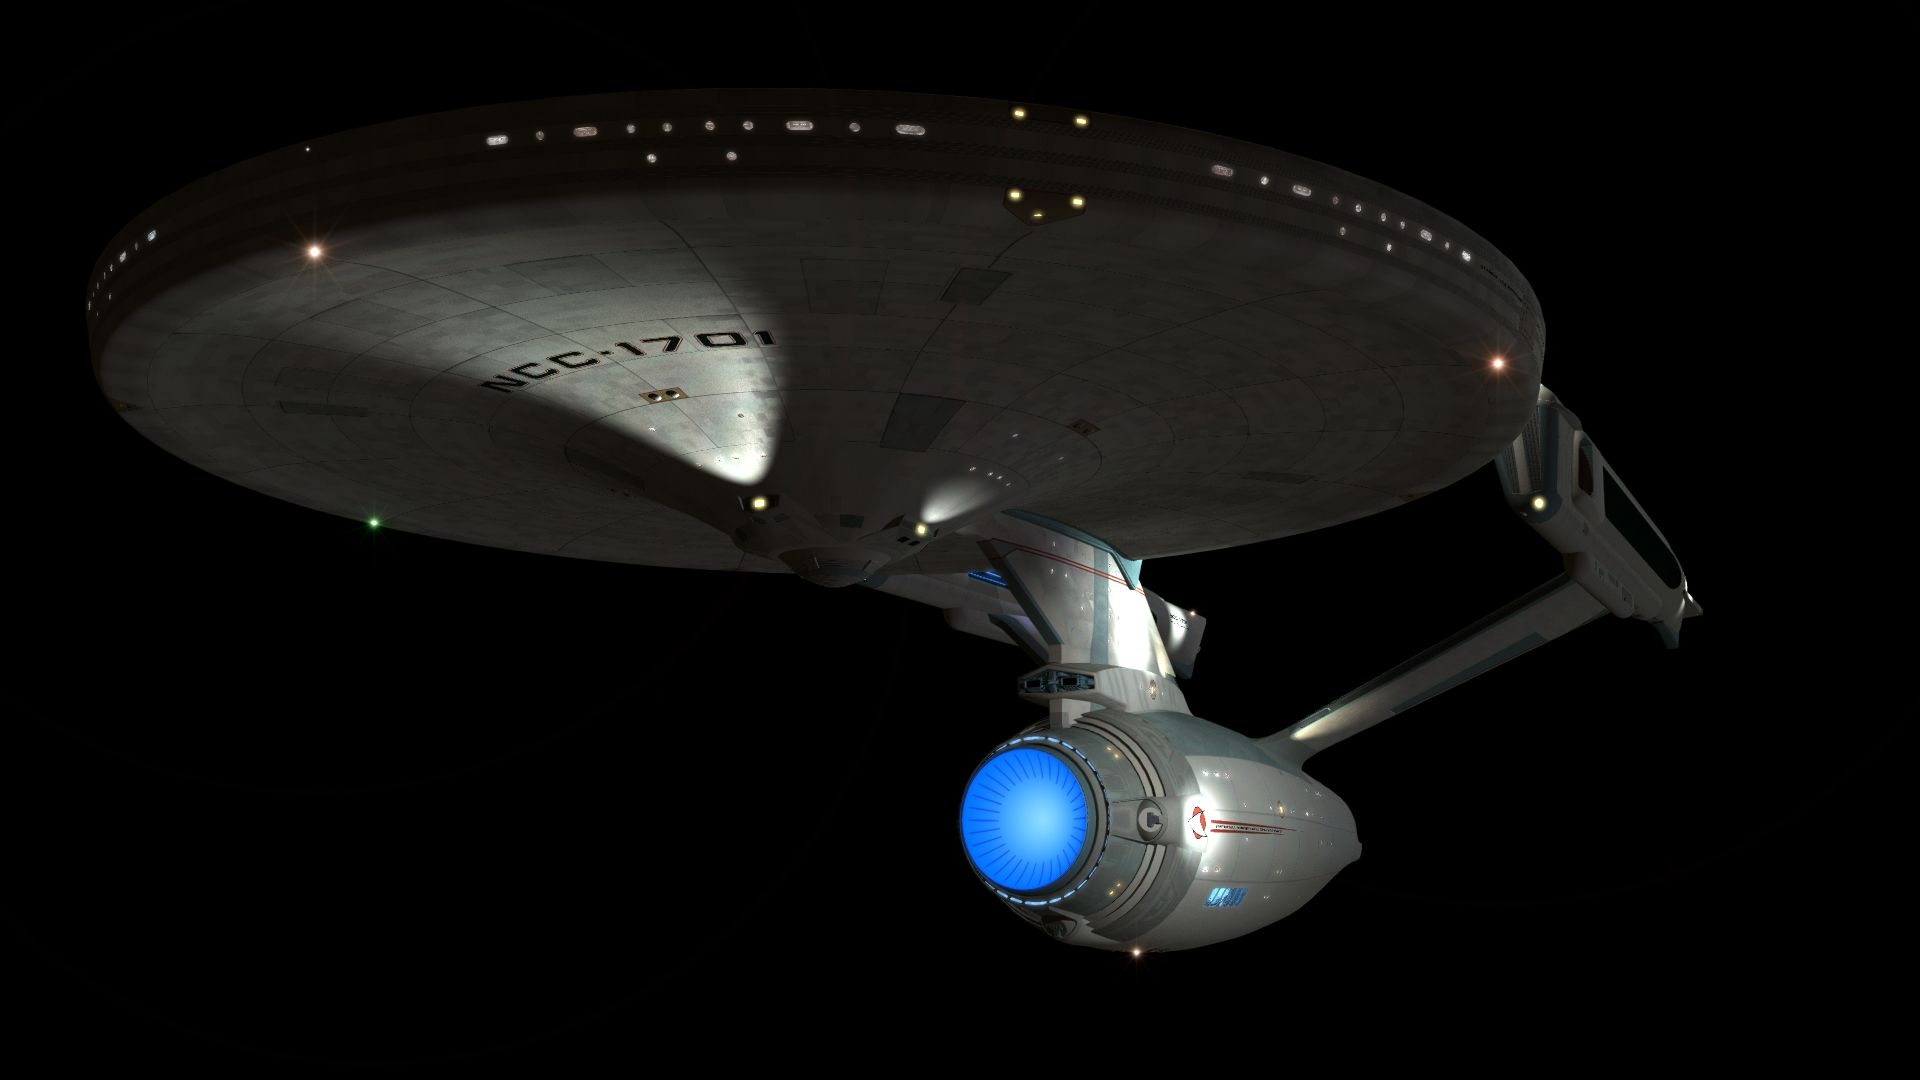 Star Trek USS Enterprise wallpaper 1920x1080 227015 WallpaperUP 1920x1080